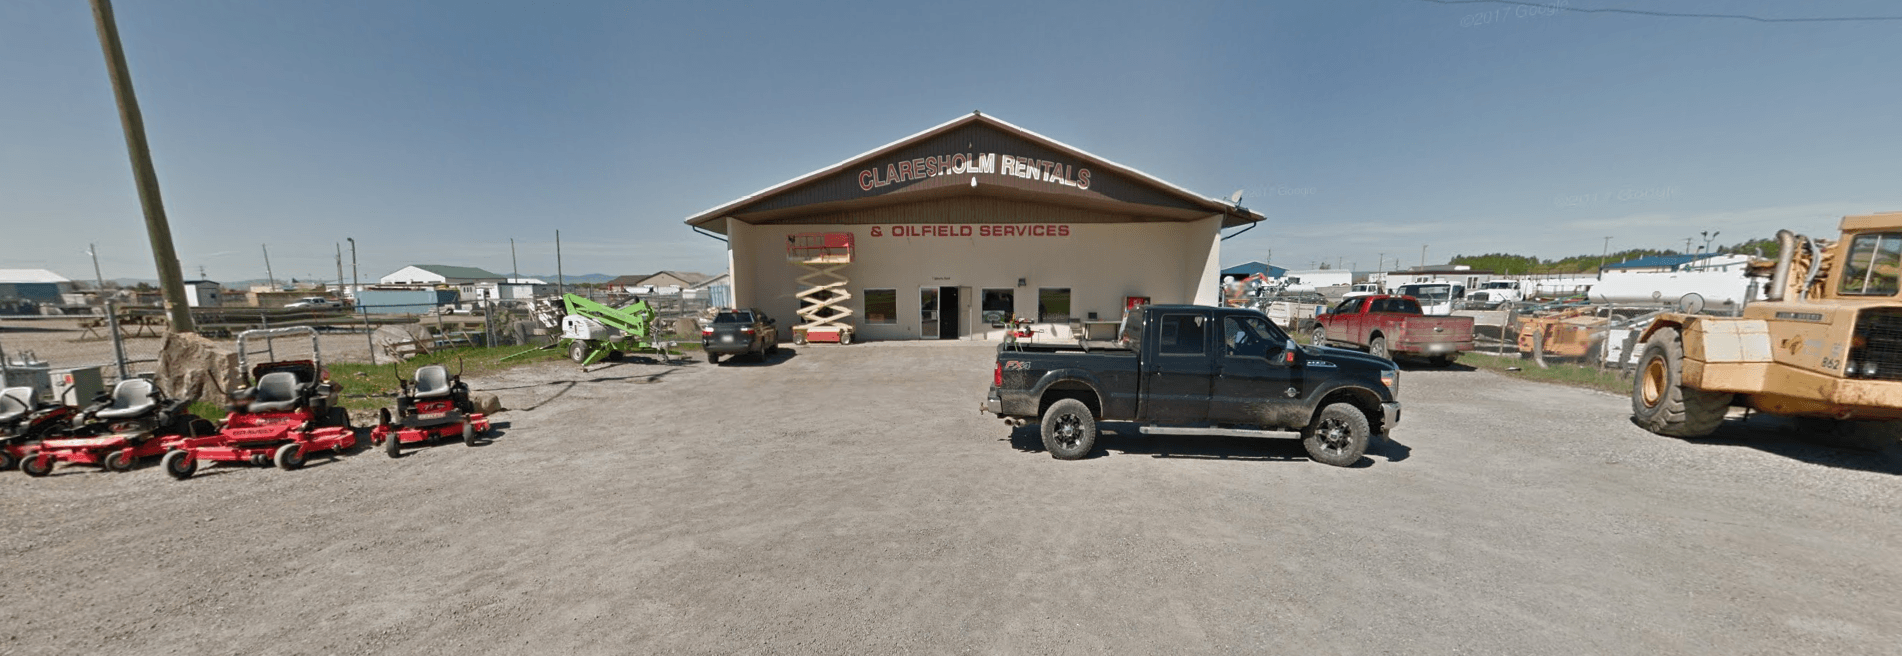 Claresholm Rentals & Oilfield Services